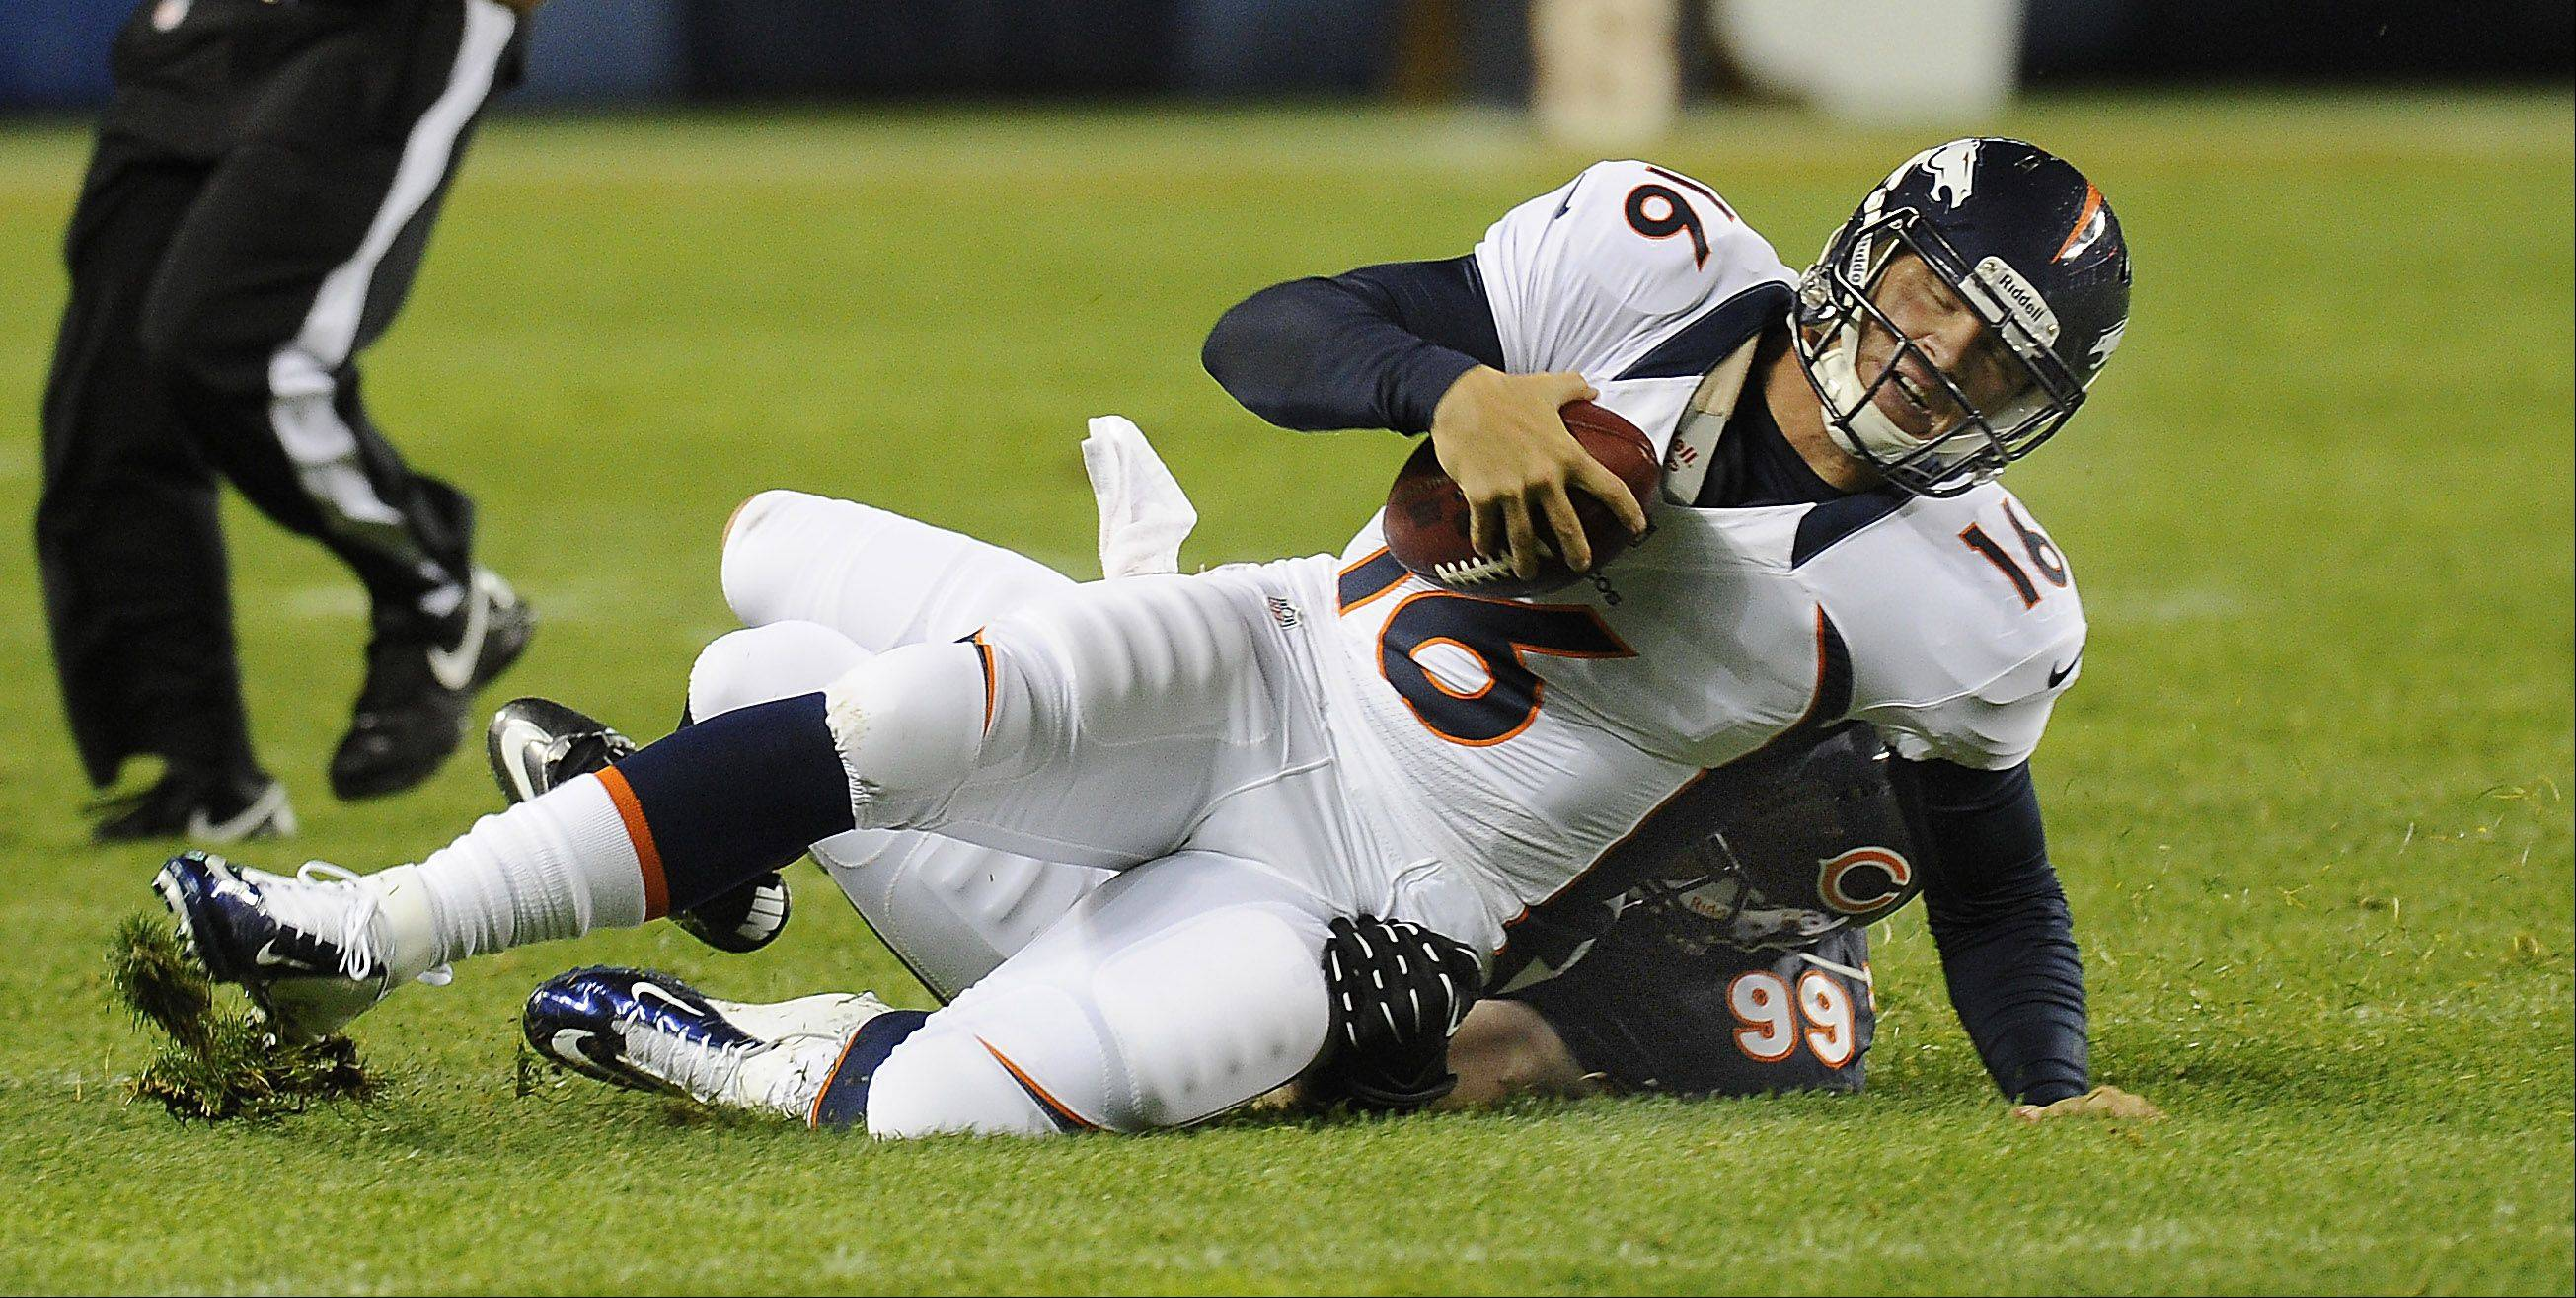 Denver Broncos quarterback Caleb Hanie is sacked by Chicago Bears Shea McClellin in the first half of game action at Soldier Field in Chicago on Thursday.